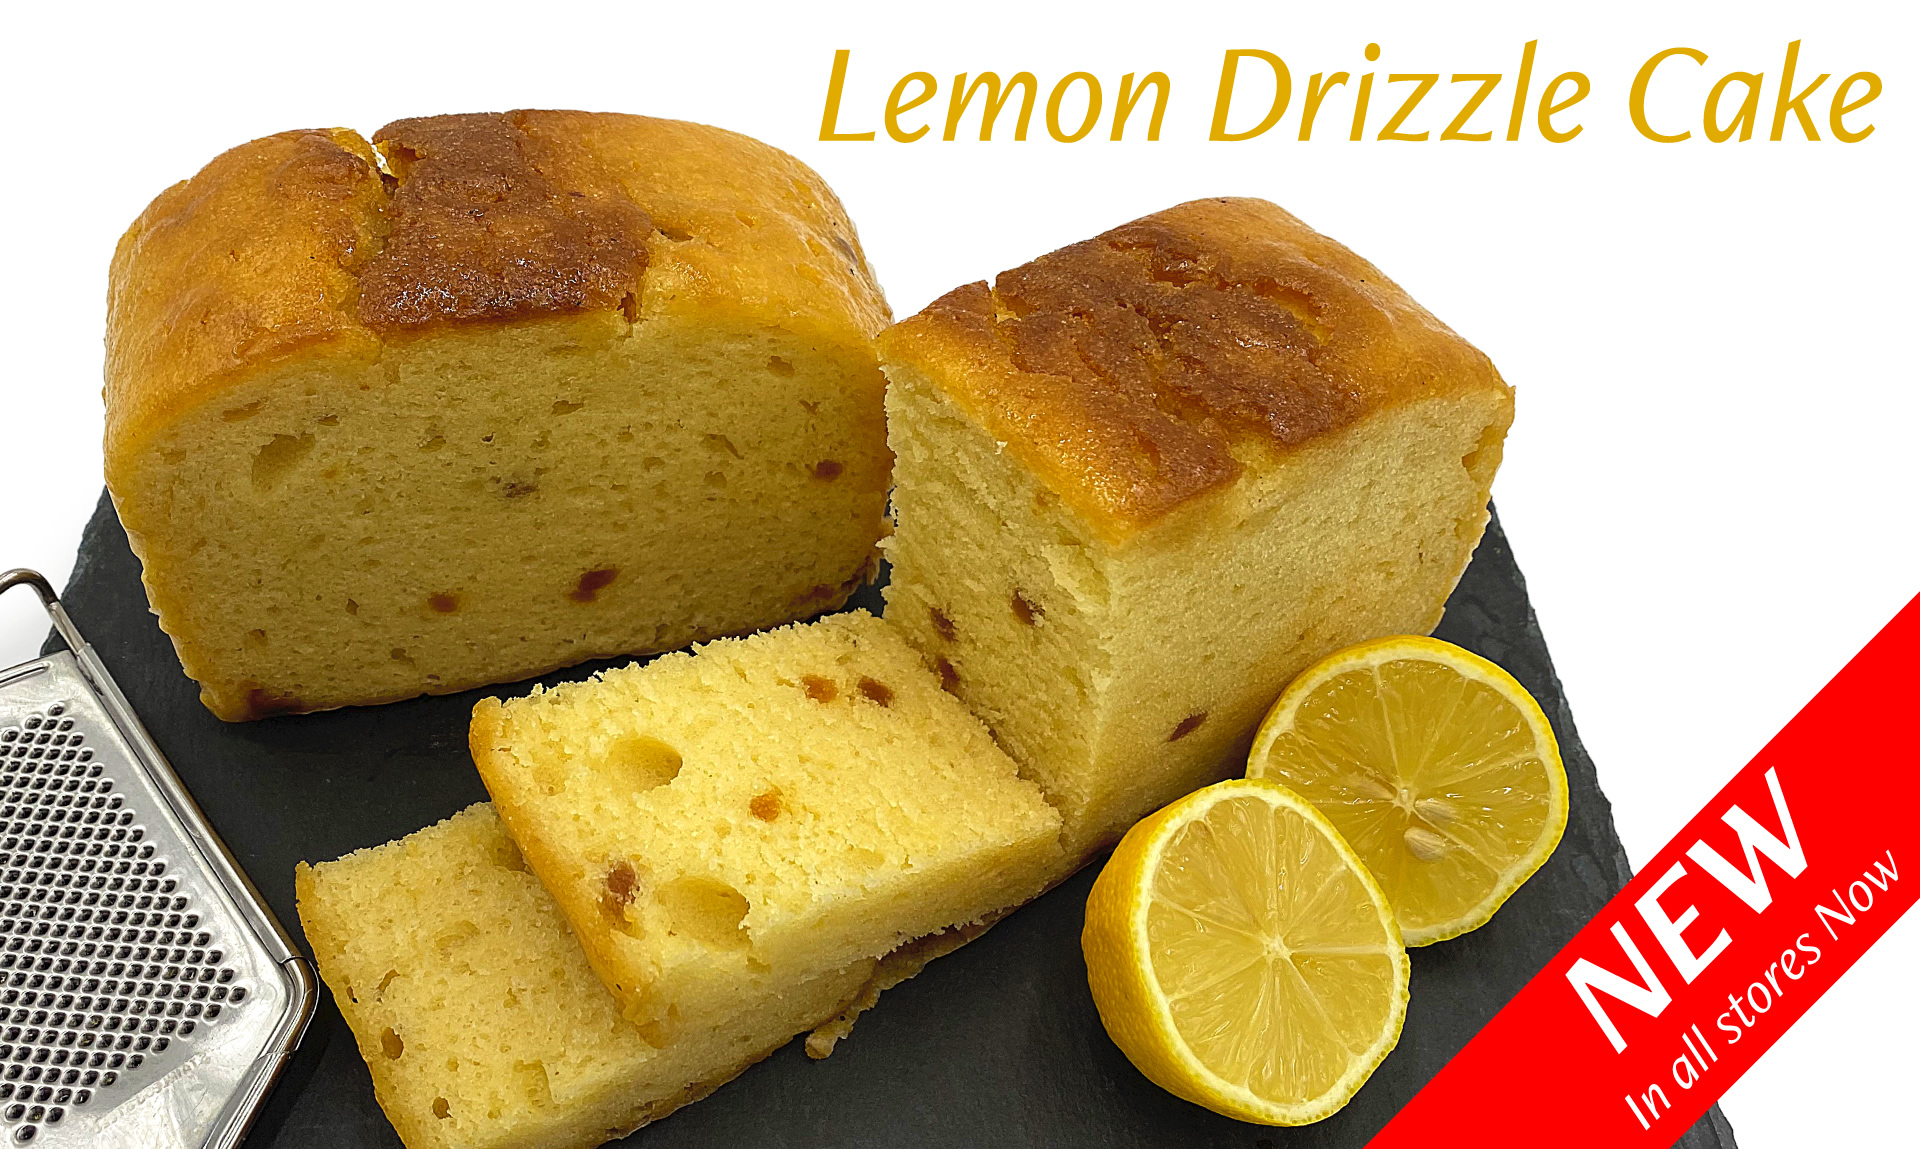 Lemon Drizzle Cake, new in all stores now